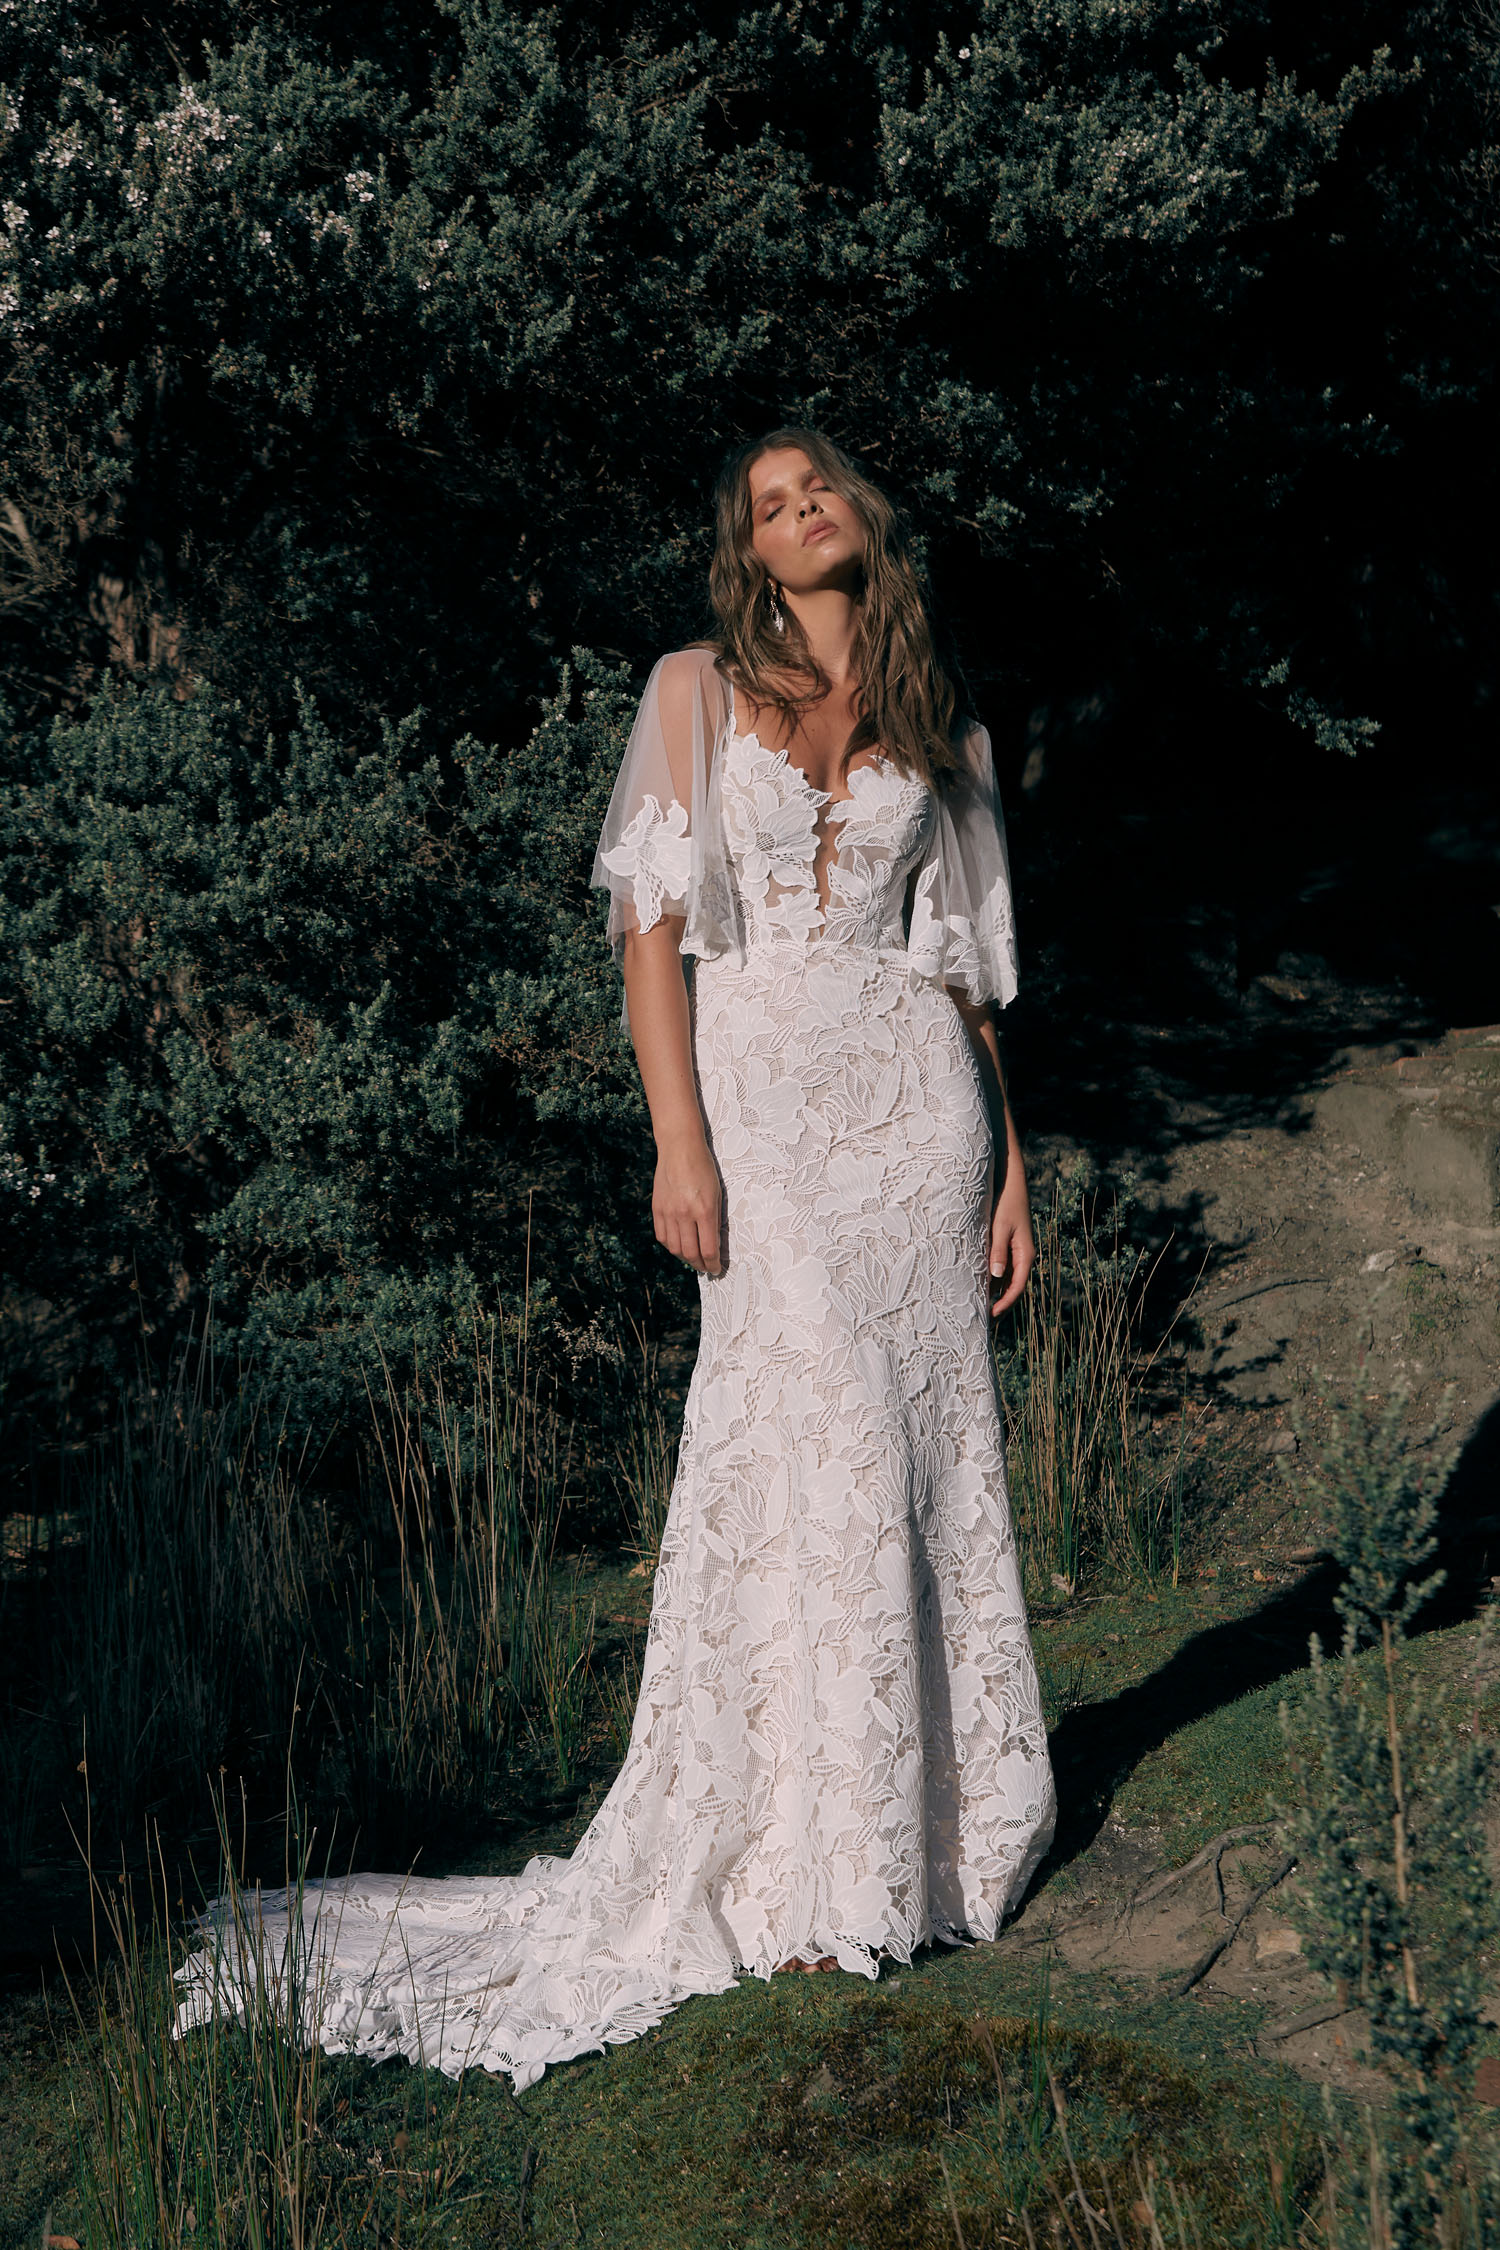 Carlyle Ml20072 Full Length Embroidered Lace Fitted Gown Plunging Neckline Thin Straps Detachable Matching Lace Cape Included Zipper Closure Wedding Dress Madi Lane Bridal 1